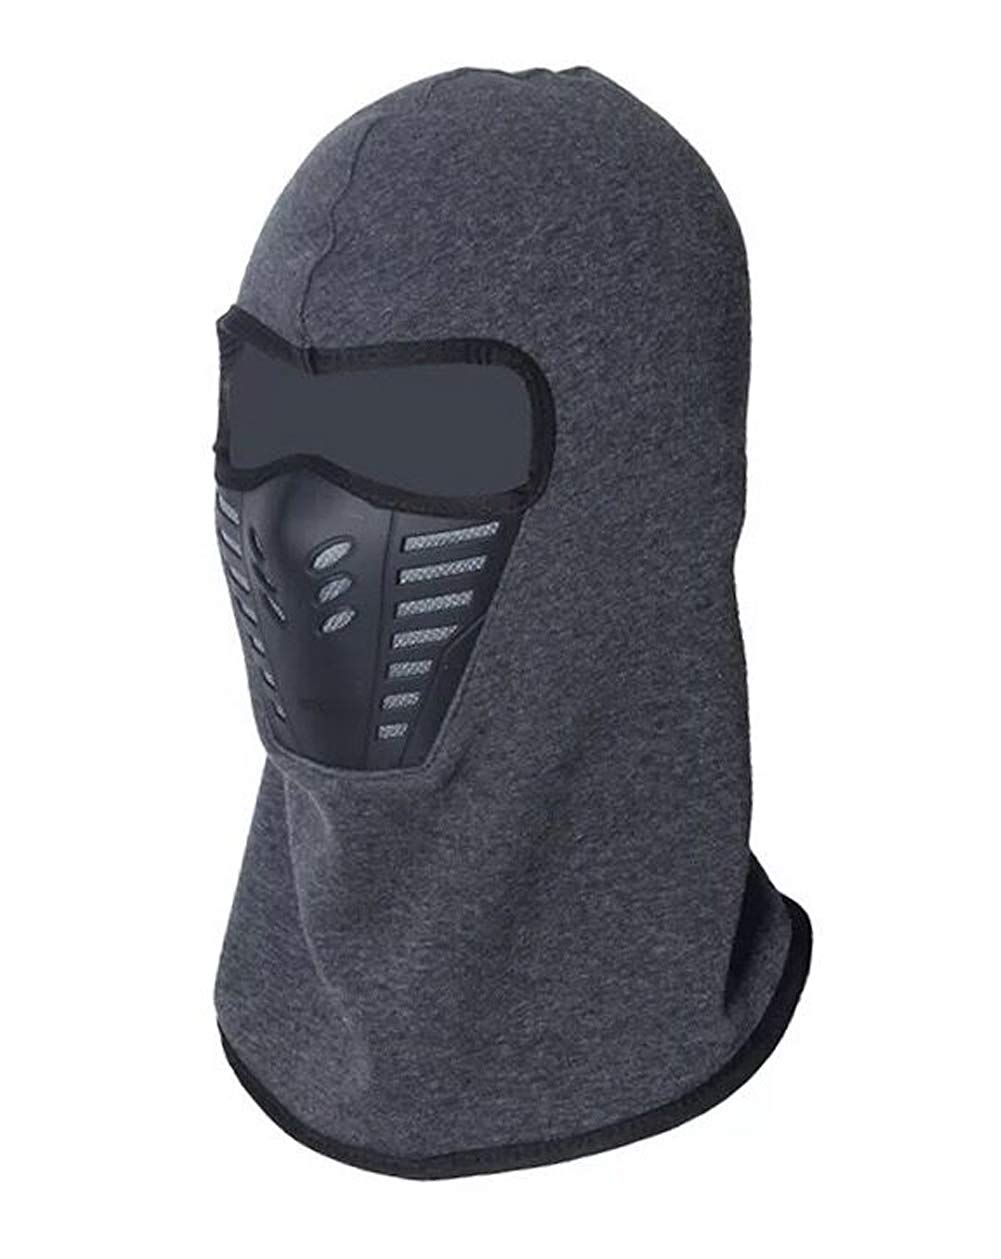 Lanzom Unisex Outdoor Sports Balaclava Face Mask Winter Fleece Windproof Ski Mask for Men and Women